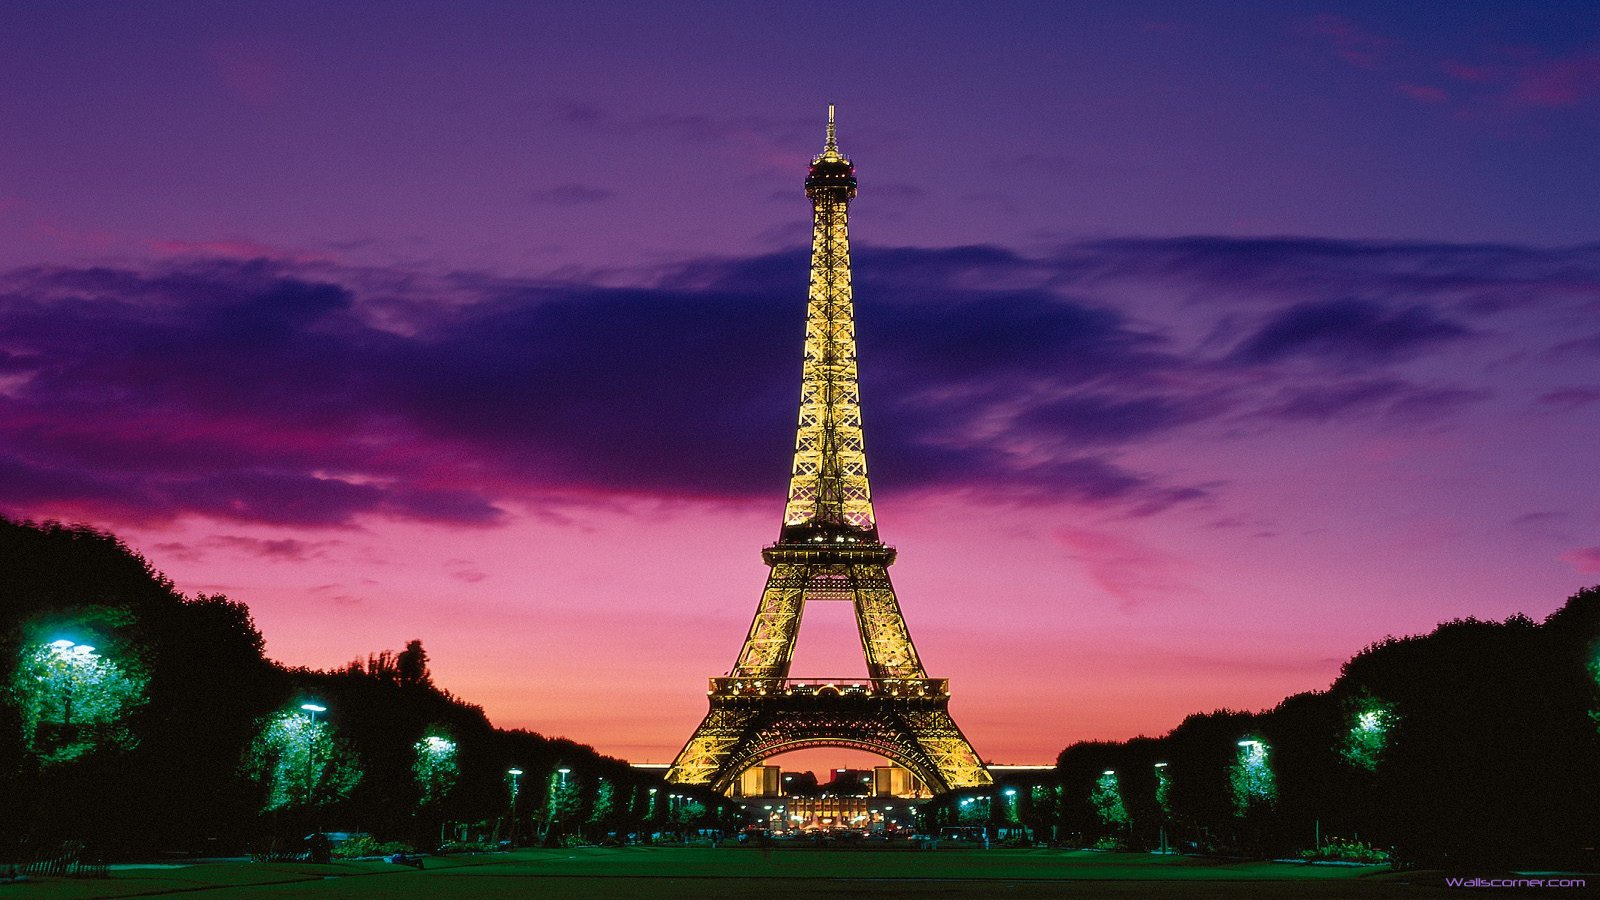 Download Eiffel Tower At Night Paris France Wallpaper Car Pictures 1600x900